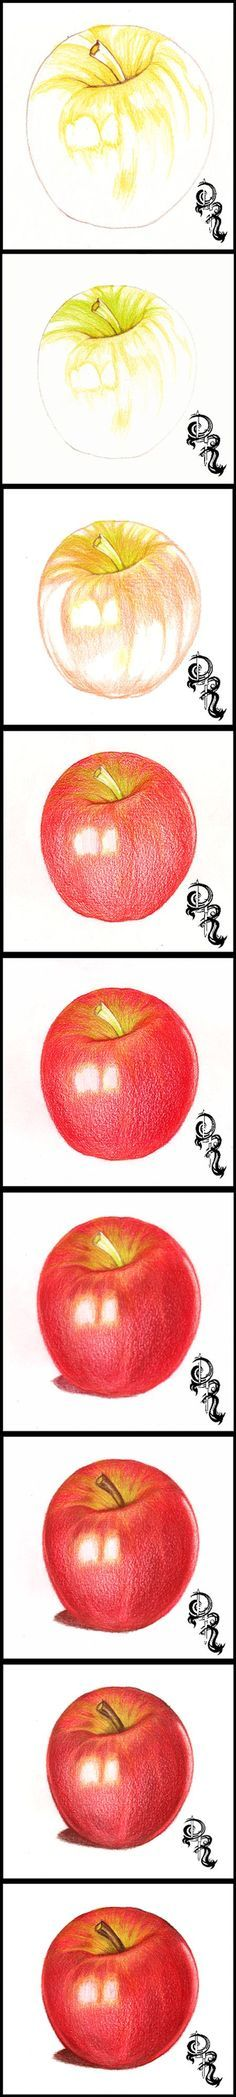 How to Draw an Apple with Colored Pencils.   A step-by-step image of a colored pencil #artlesson by Derrick Rathgeber. Click the image for full details instructions on my blog page.   http://derricktheartist.blogspot.com/2013/08/how-to-color-delicious-pink-lady-apple.html: